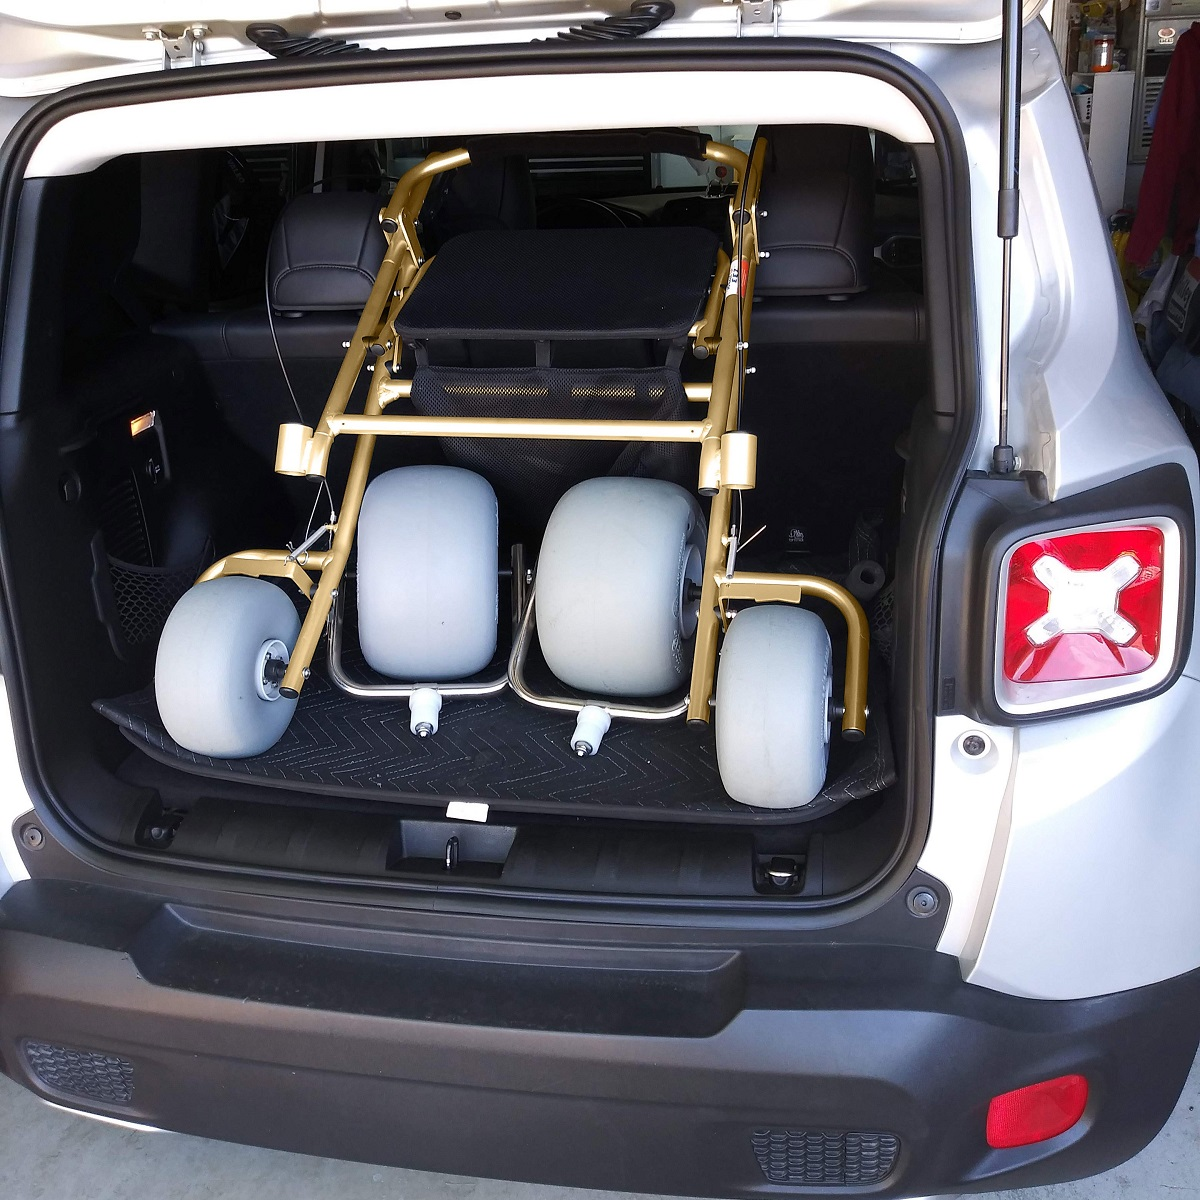 Lightweight and compact for simple transporting